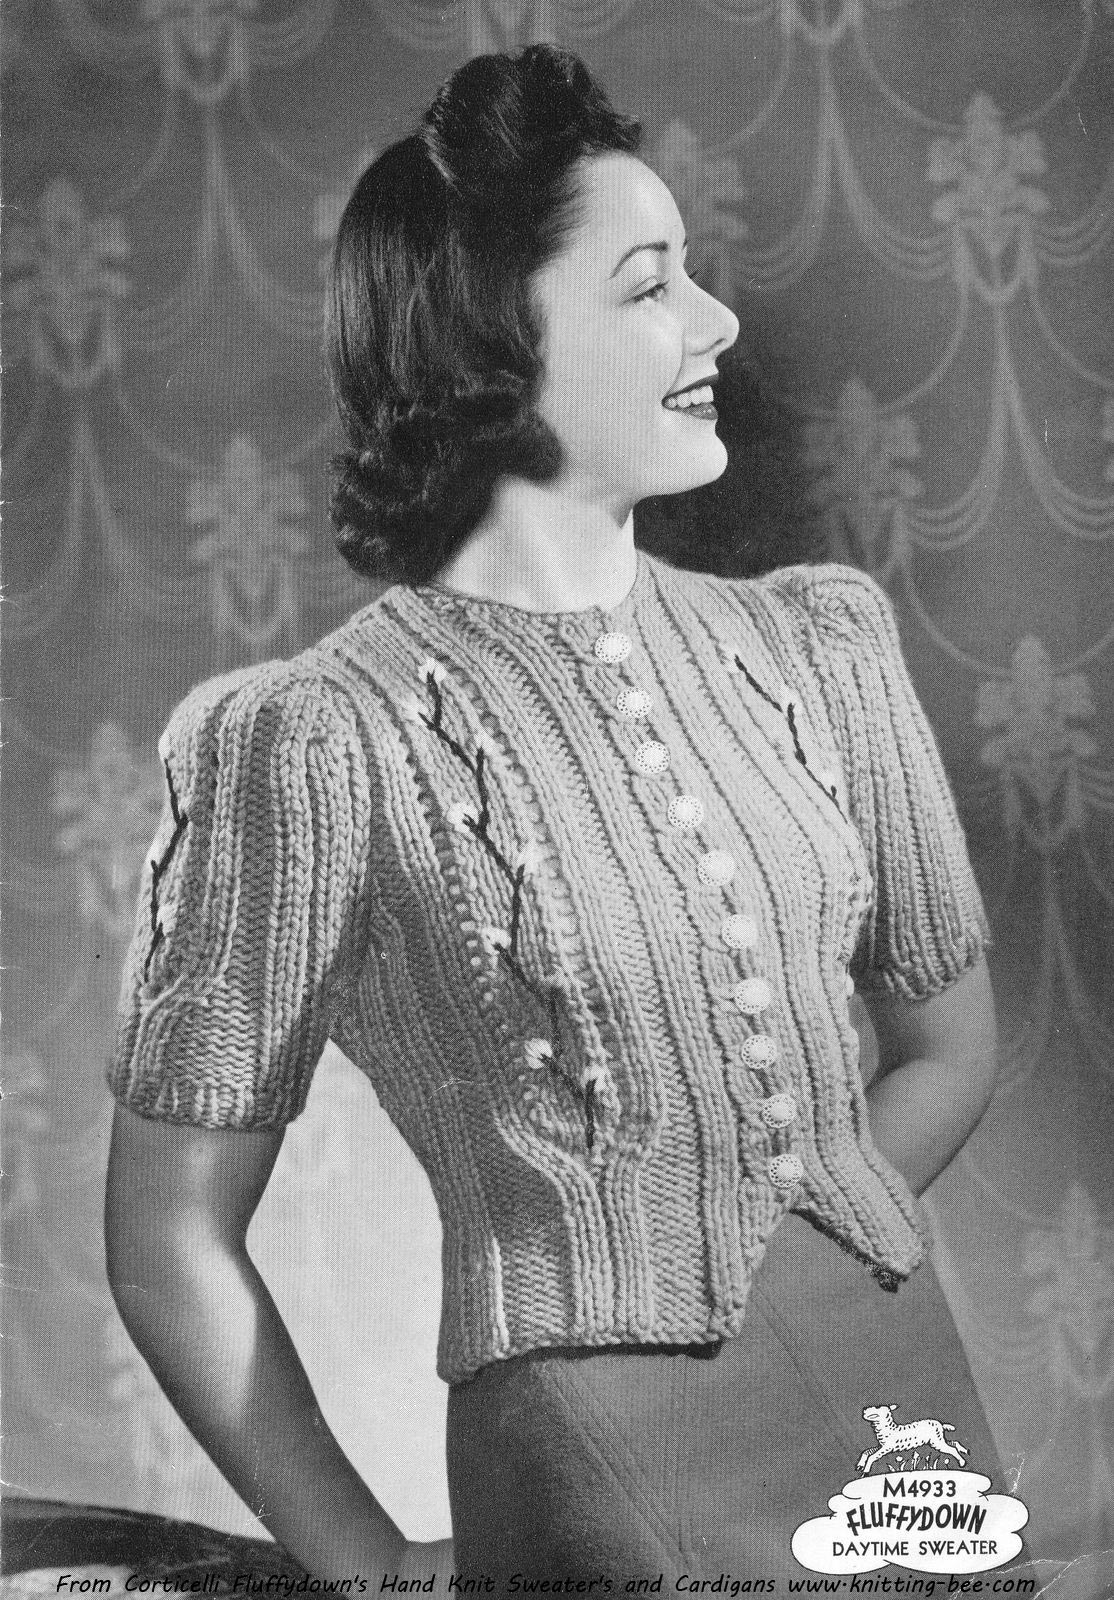 The Vintage Pattern Files: 1940's Knitting - Daytime Sweater